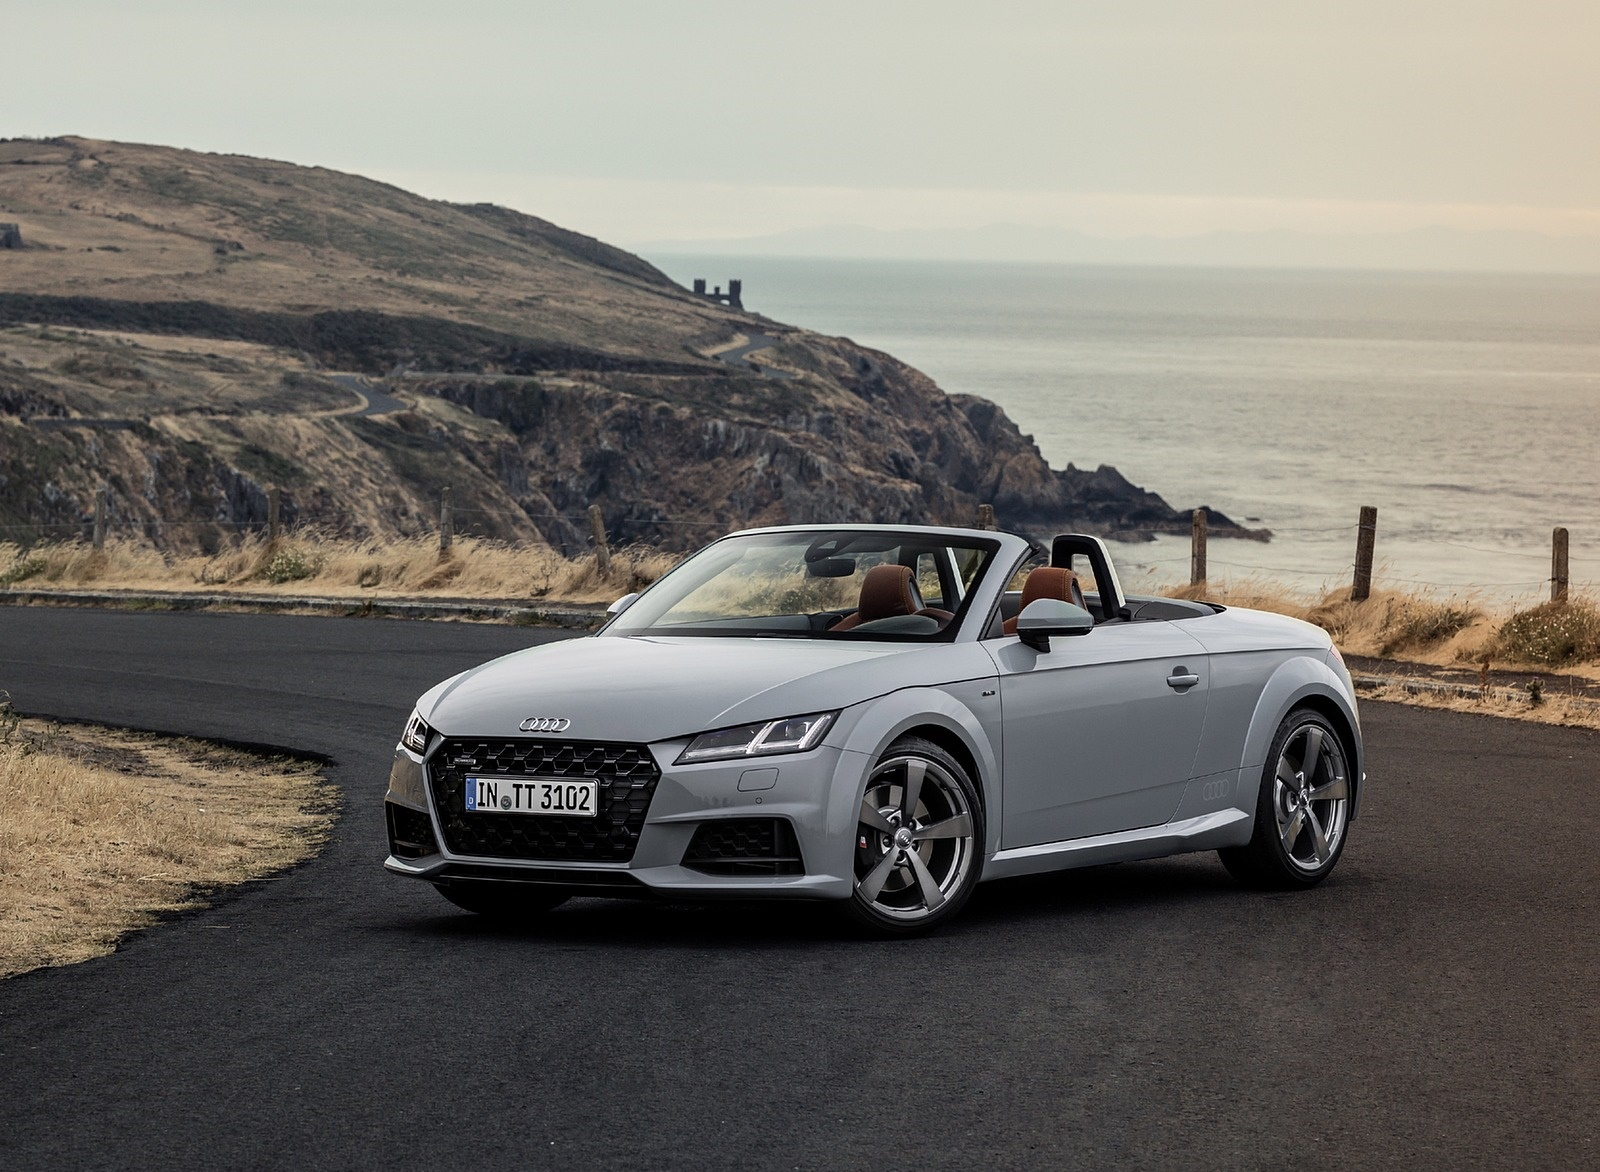 2019 Audi TT 20th Anniversary Edition (Color: Arrow Gray) Front Three-Quarter Wallpapers (13)